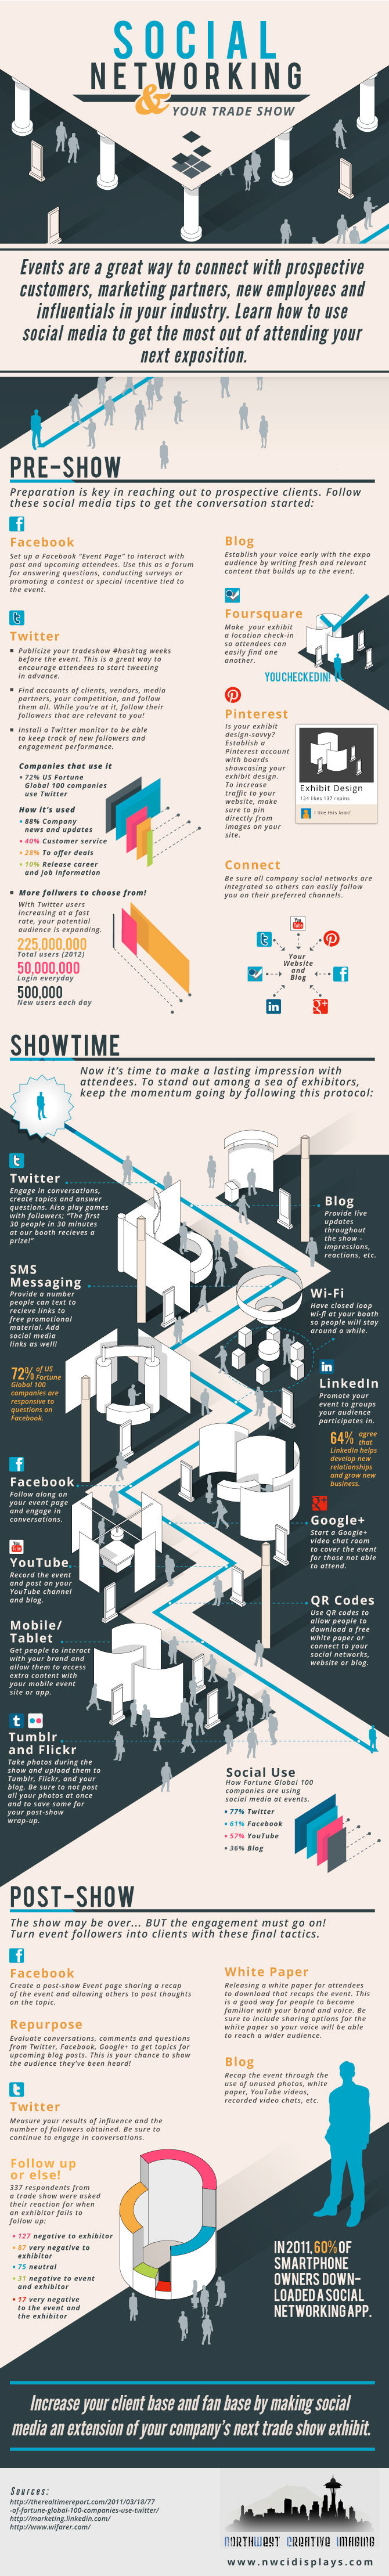 Social Media Trade Shows Infographic